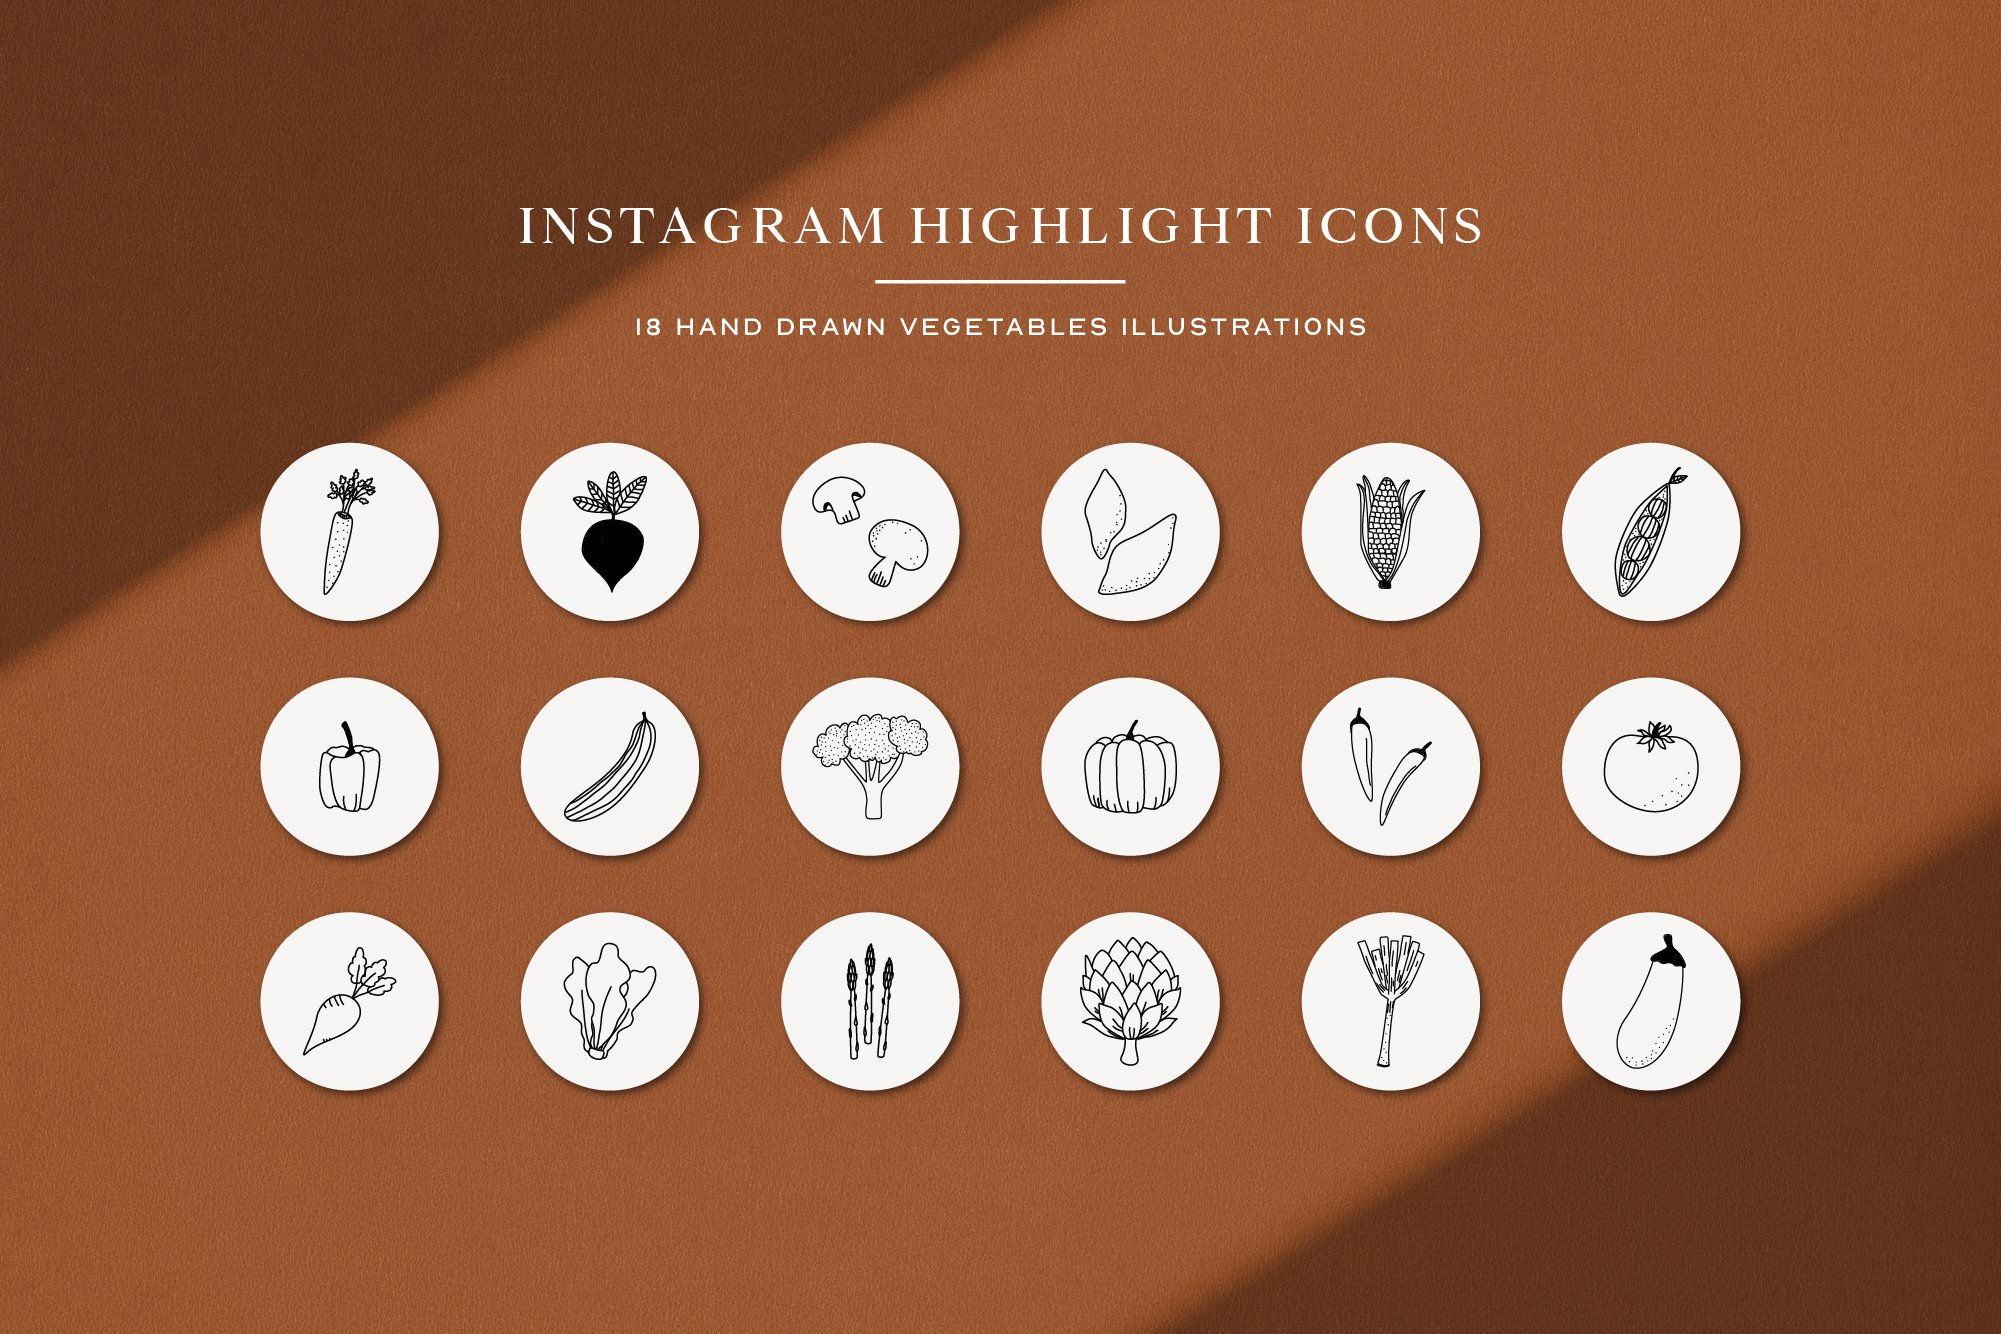 Instagram Vegetables Highlights Icons | Instagram Story Cove example image 2